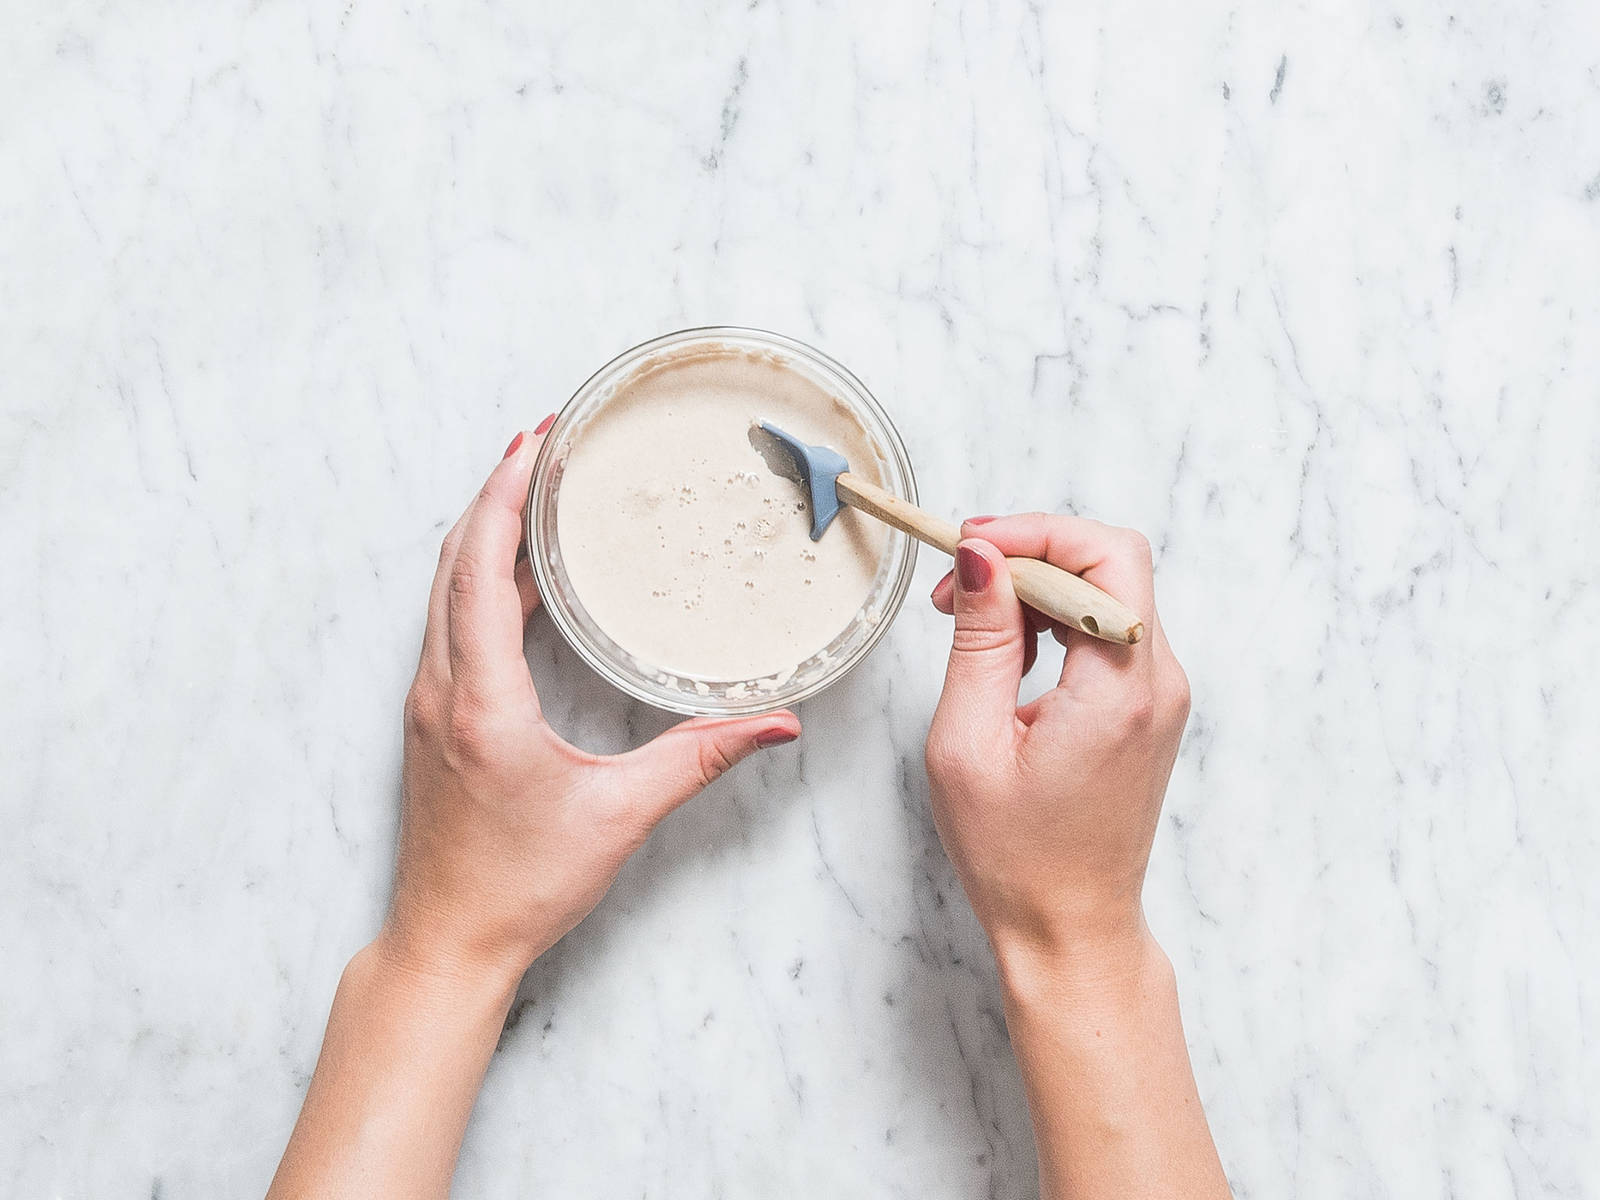 In a small mixing bowl, combine yeast, warm water, and some of the sugar and lightly stir. Let sit for approx. 5 min., until it becomes foamy on top. In another small mixing bowl, whisk together some of the eggs and oil.